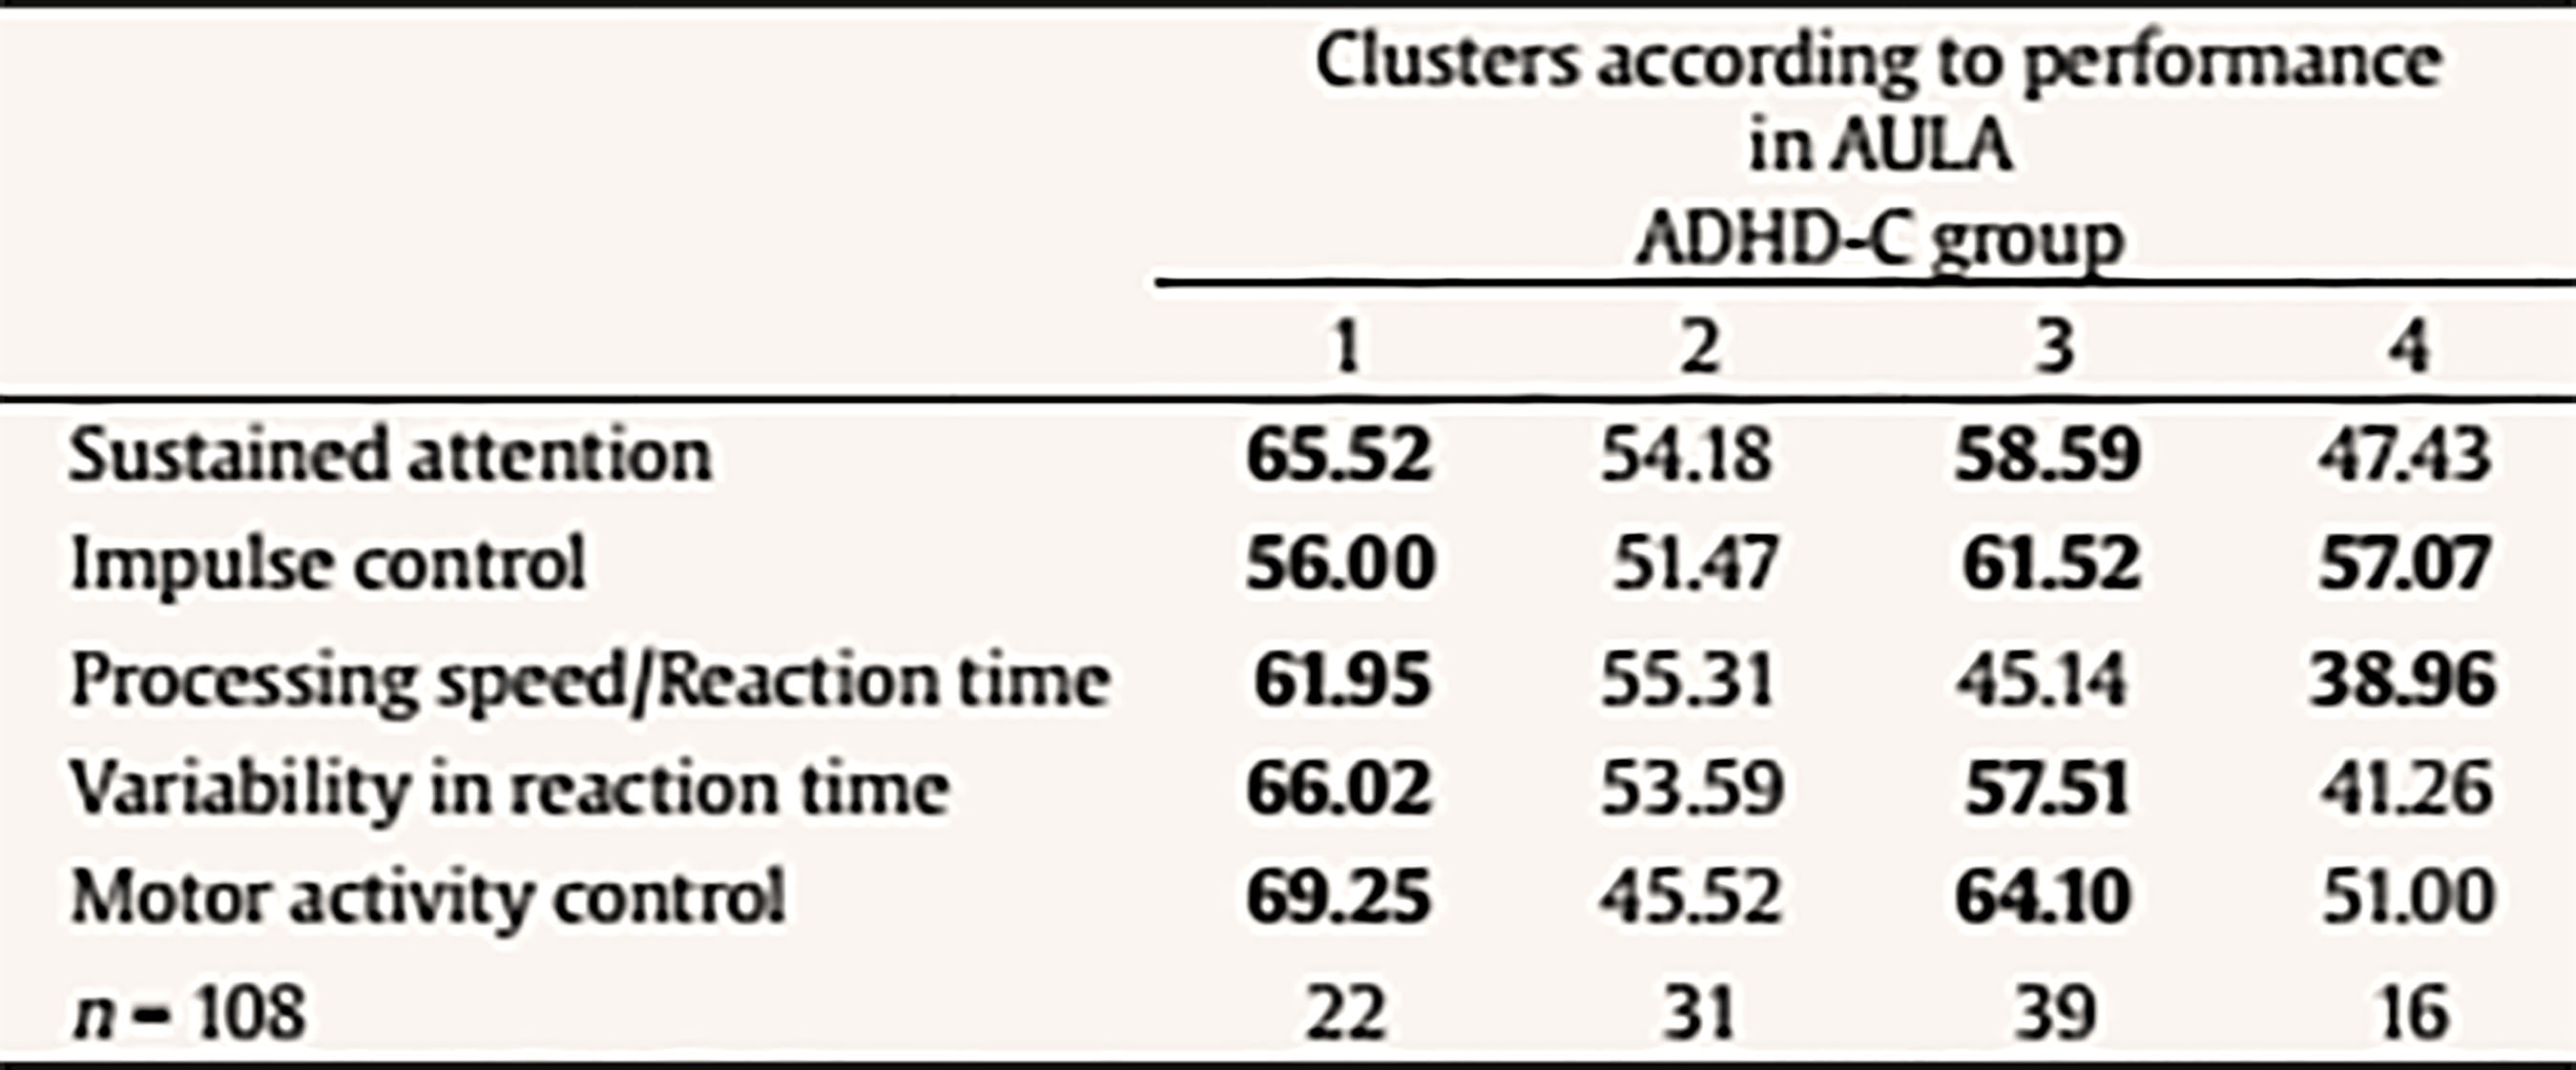 Adhd Evaluations Driven Mainly By >> Virtual Reality Based Assessment And Rating Scales In Adhd Diagnosis